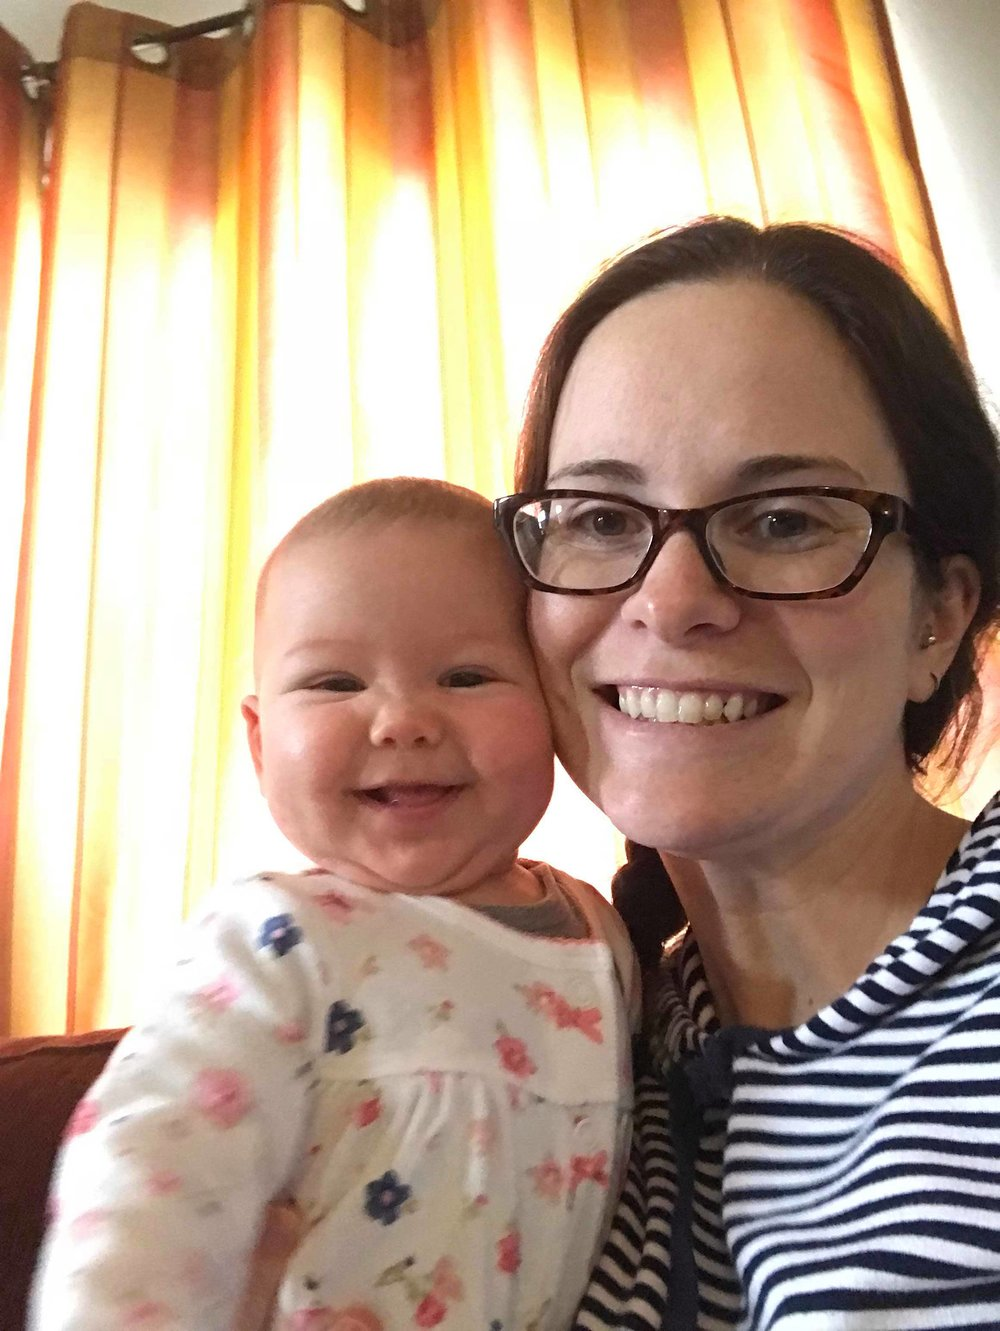 Selfies. - (The only recent photos I have with my own daughter!)